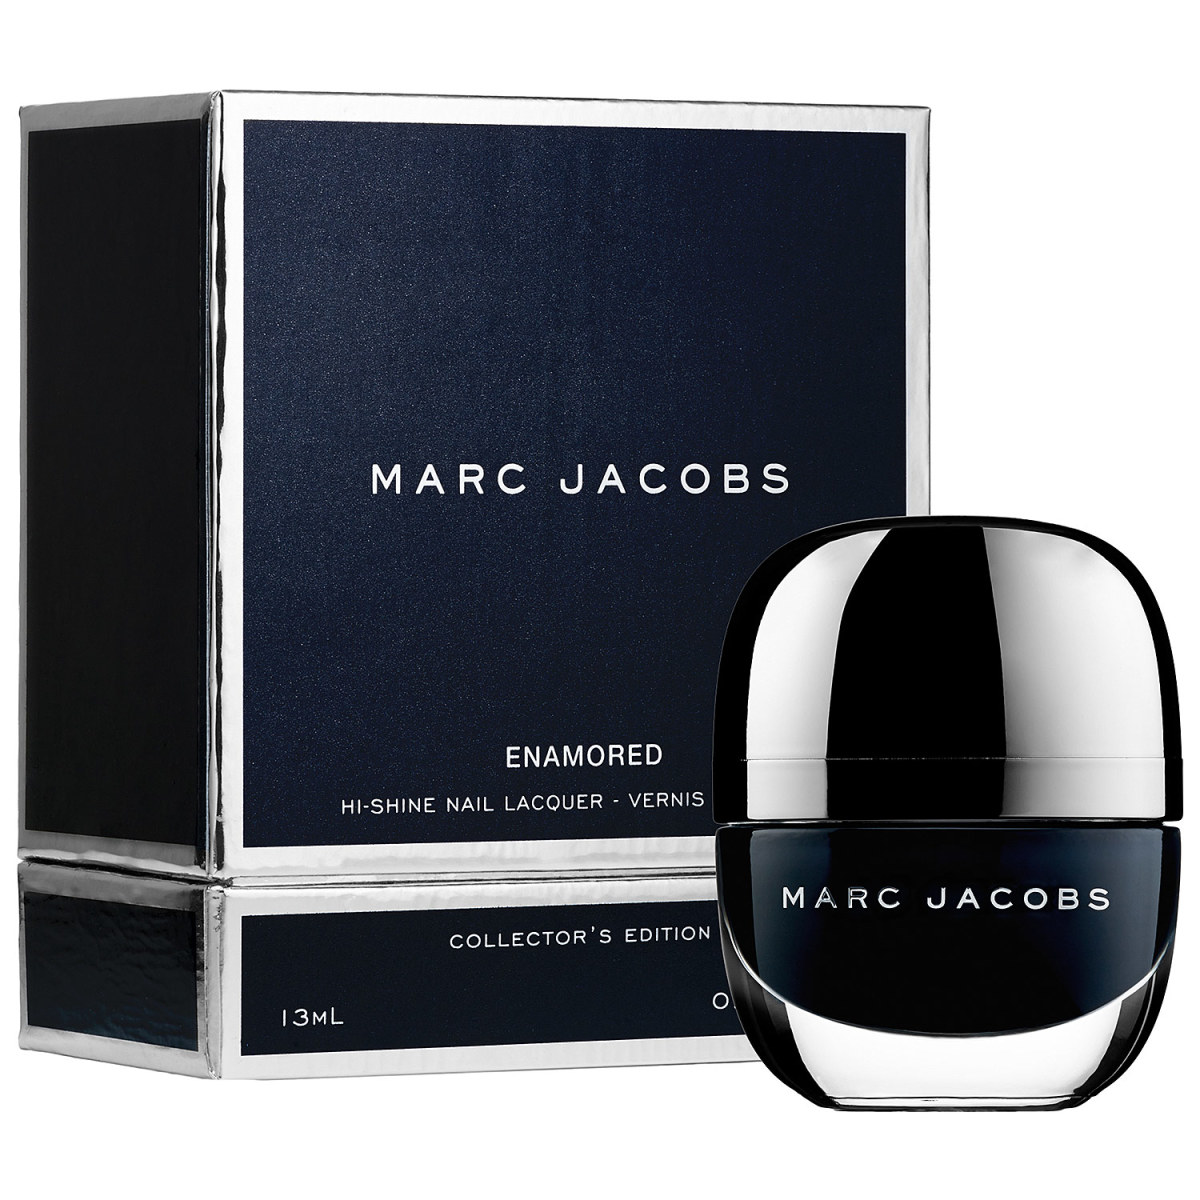 Marc Jacobs Enamored Hi-Shine Nail Lacquer Collector's Edition